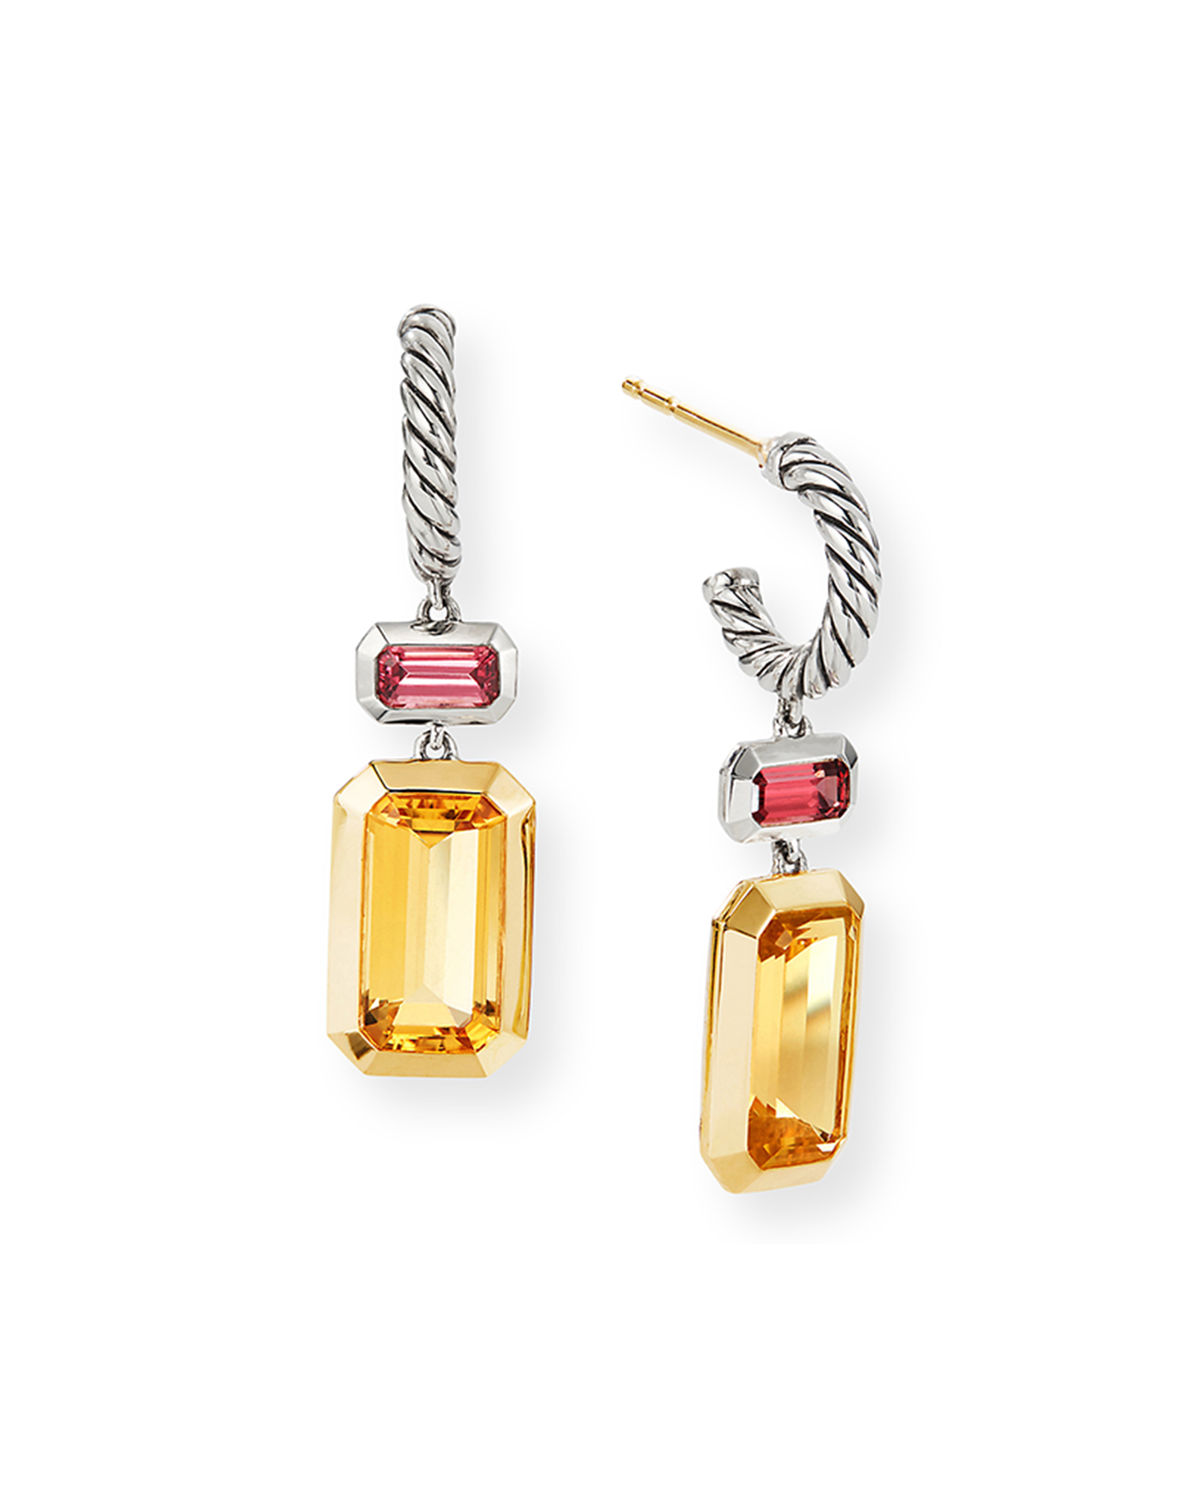 David Yurman Accessories NOVELLA 2-STONE & 18K GOLD DROP EARRINGS